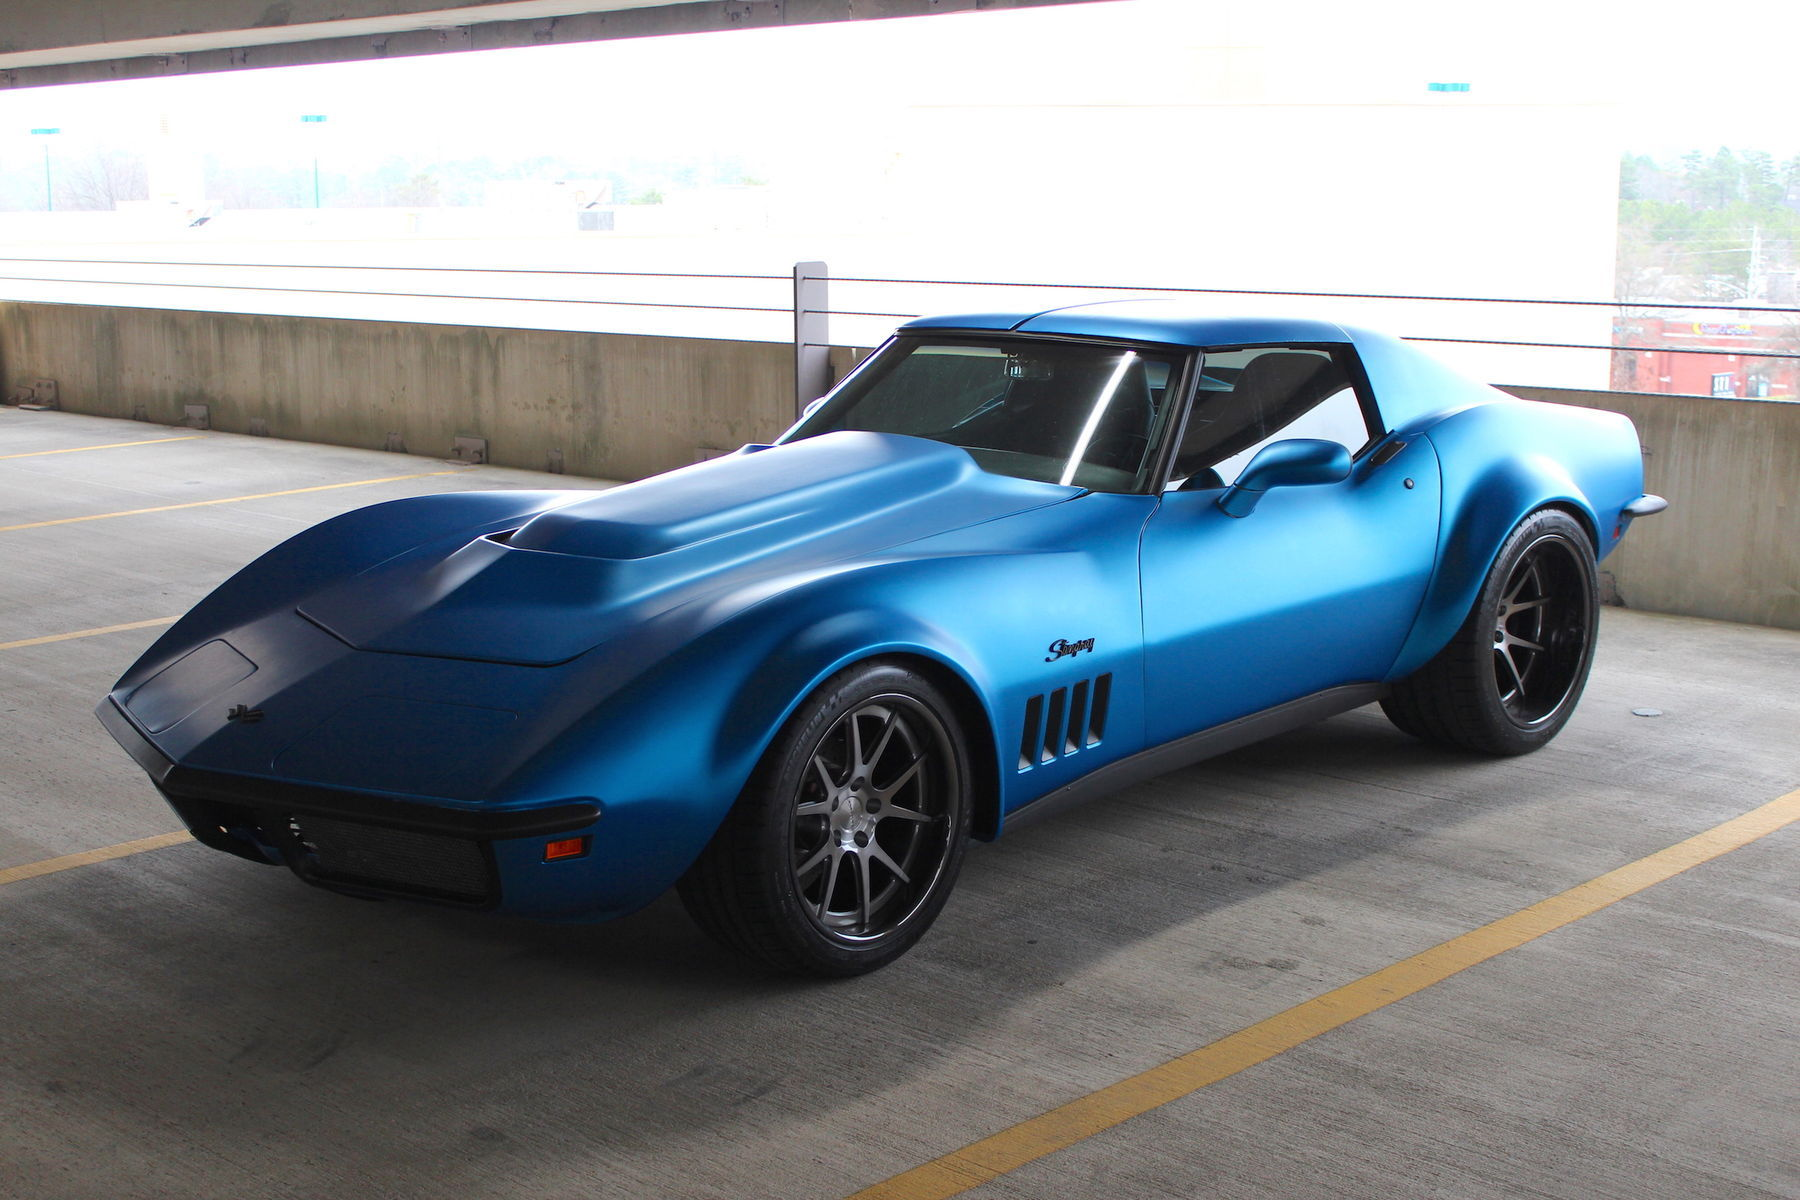 1969 Chevrolet Corvette Stingray | Chris Wylie's 1969 C3 Corvette Stingray on Forgeline GA3C Concave Wheels